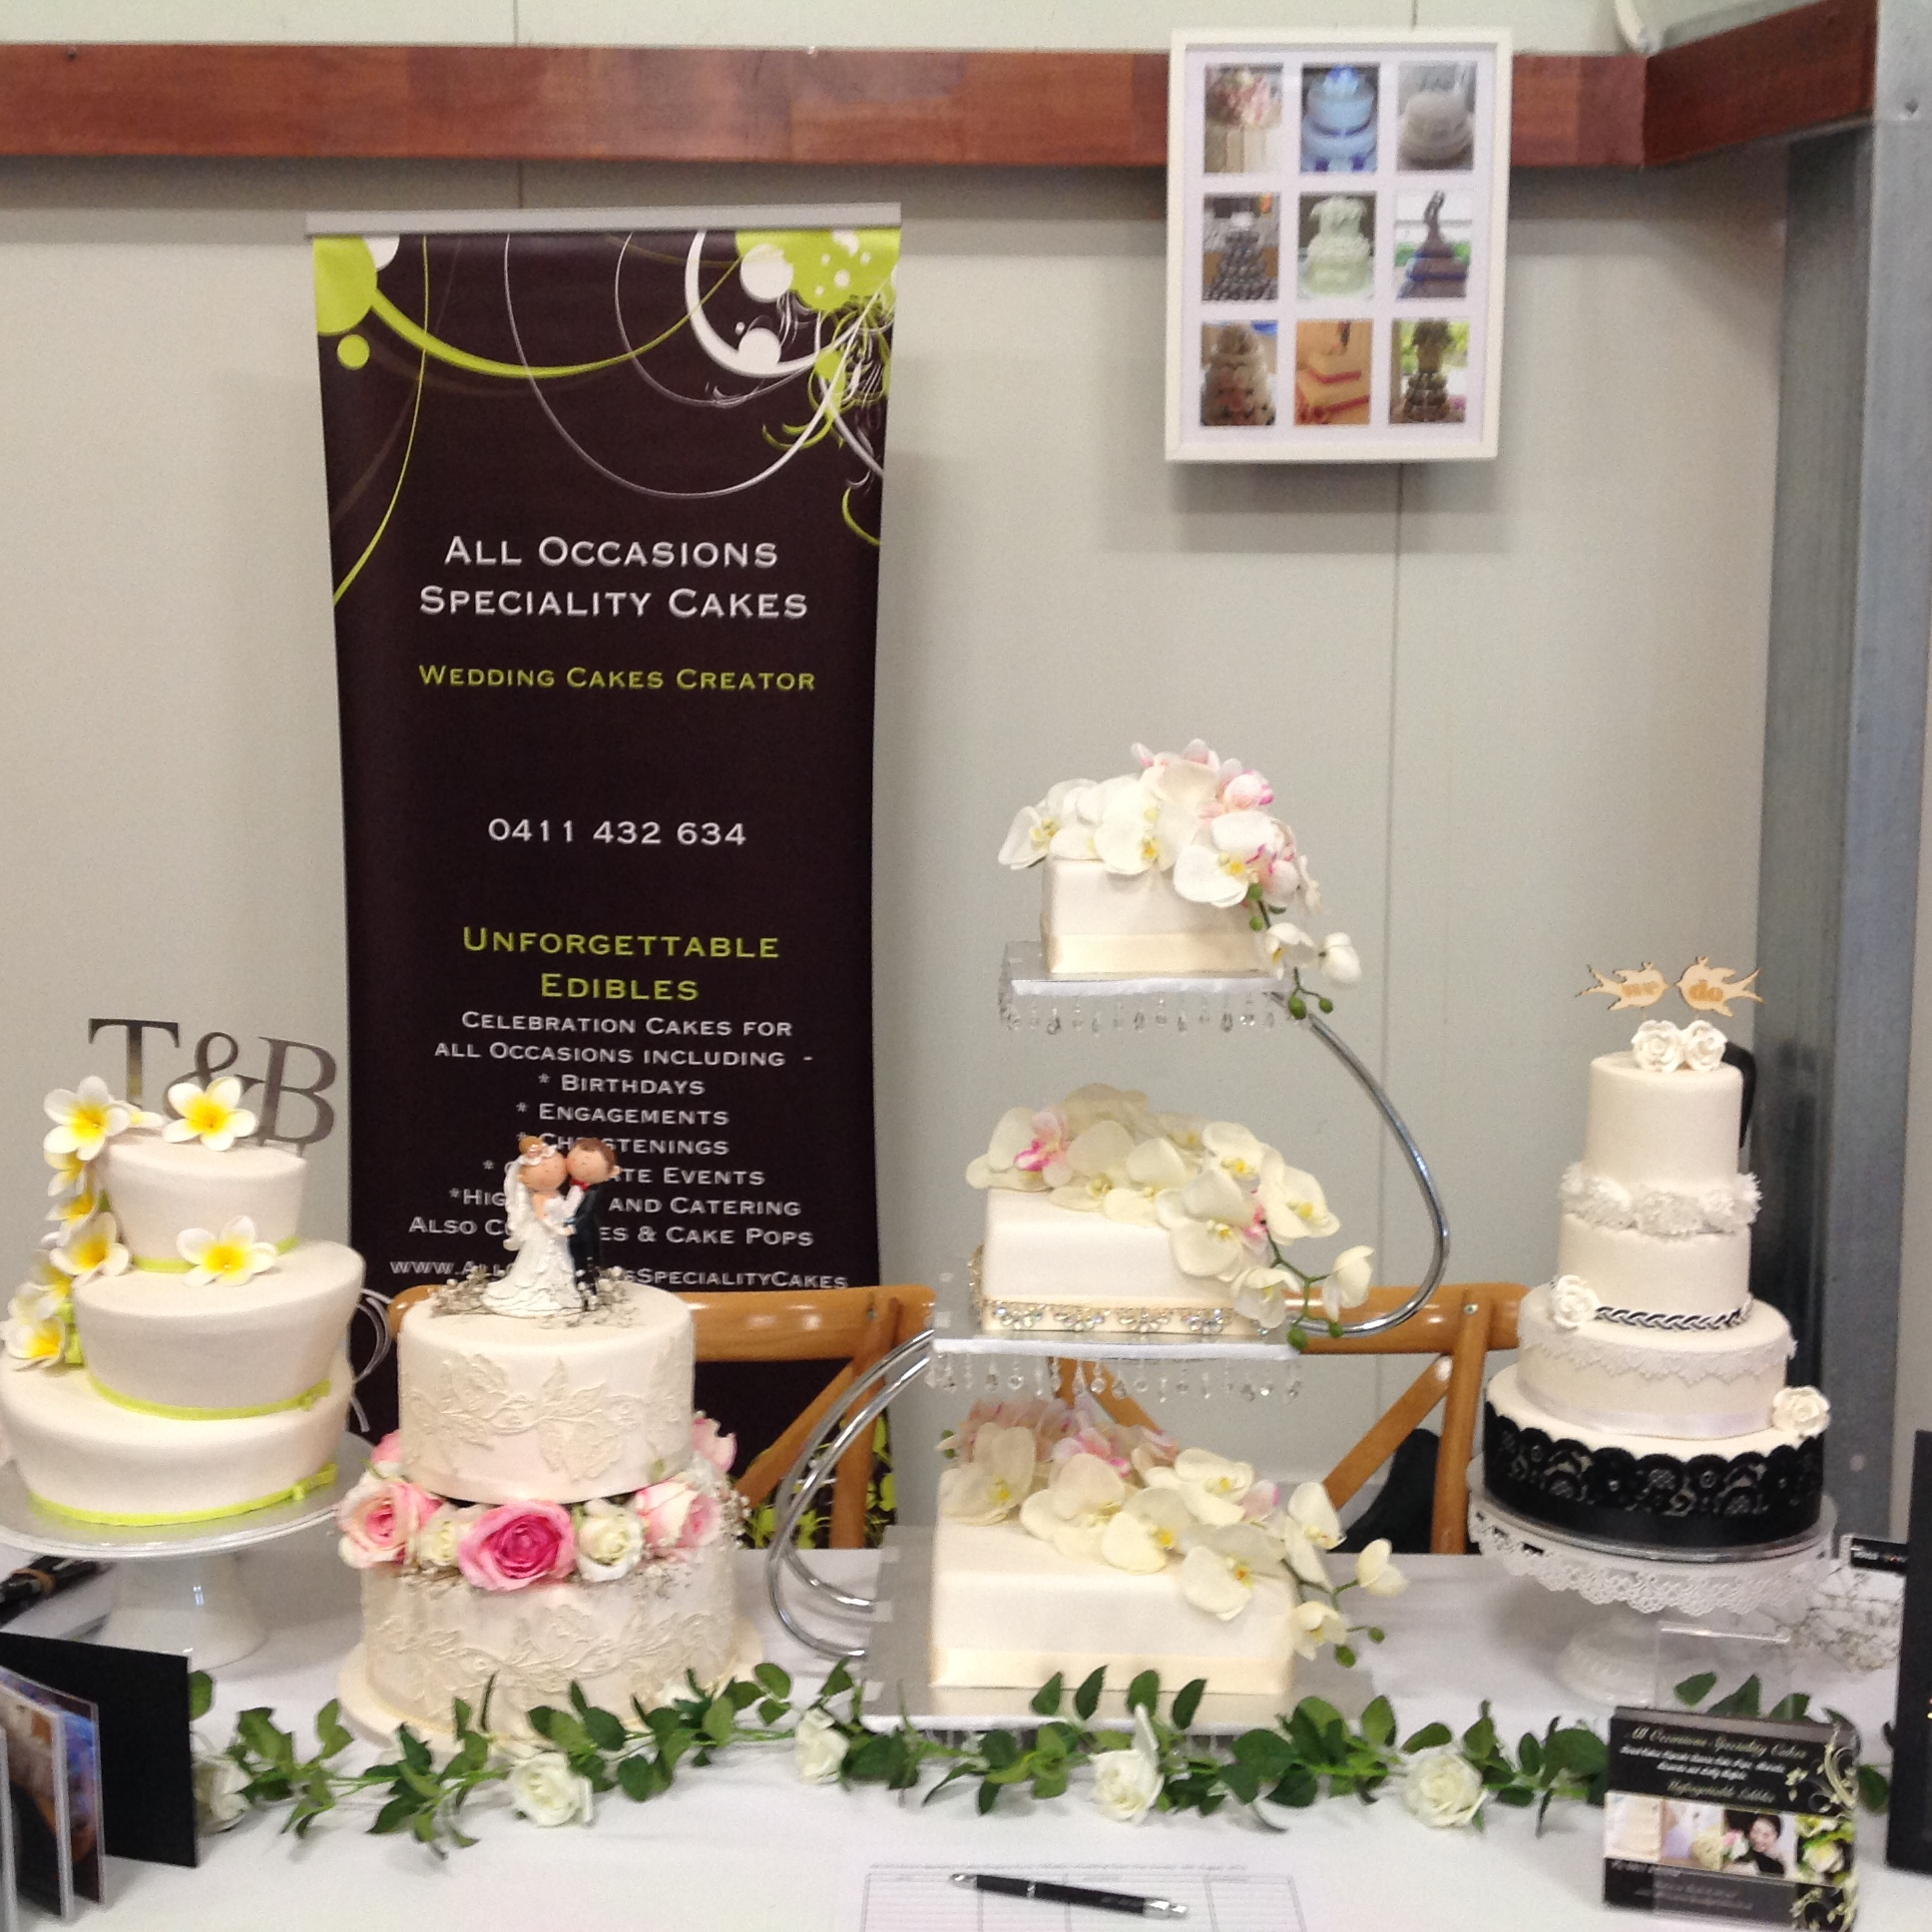 All Occasions Speciality Cakes Stall